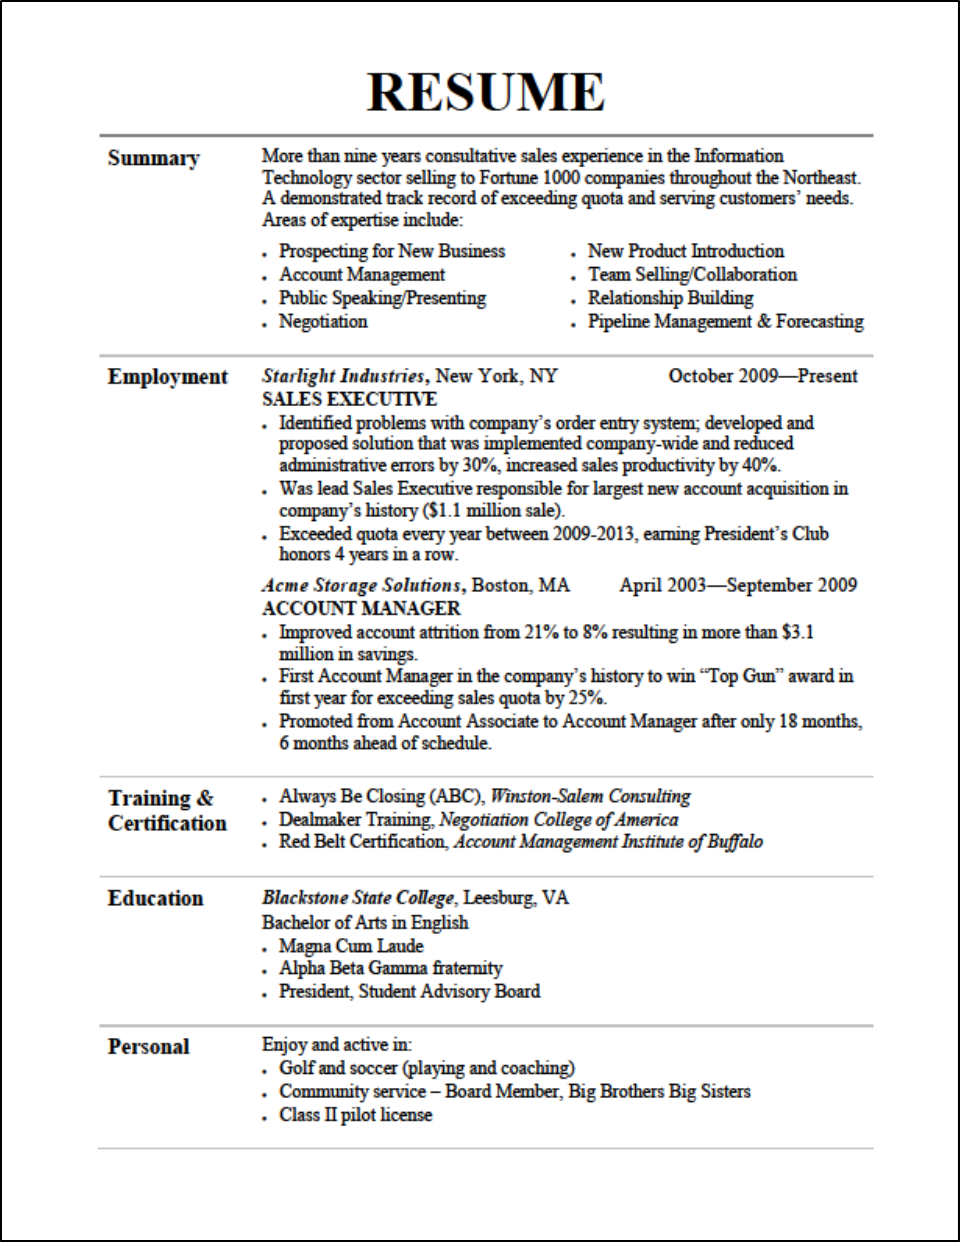 8 Tips to Make Your Resume Stand Out | Pinterest | Resume examples ...